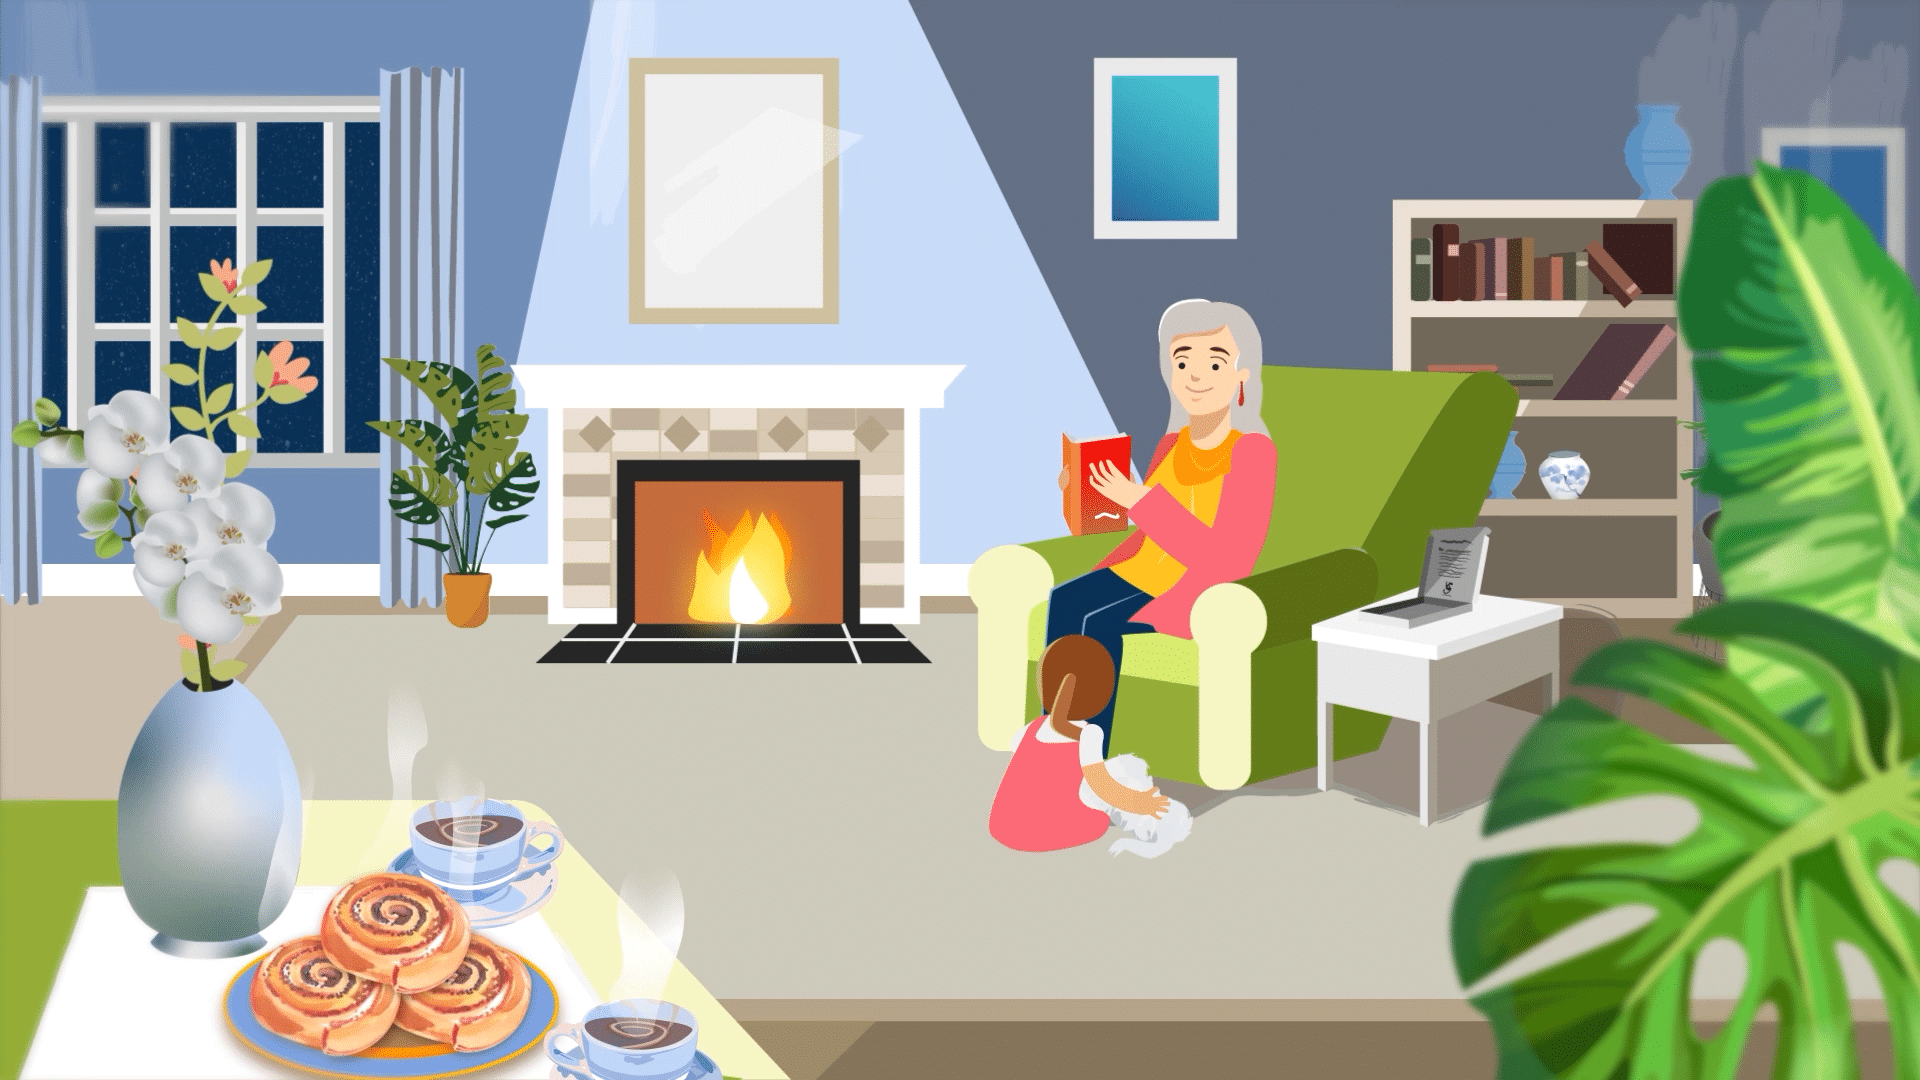 Grandma reading bioGraph book in her living room with granddaughter